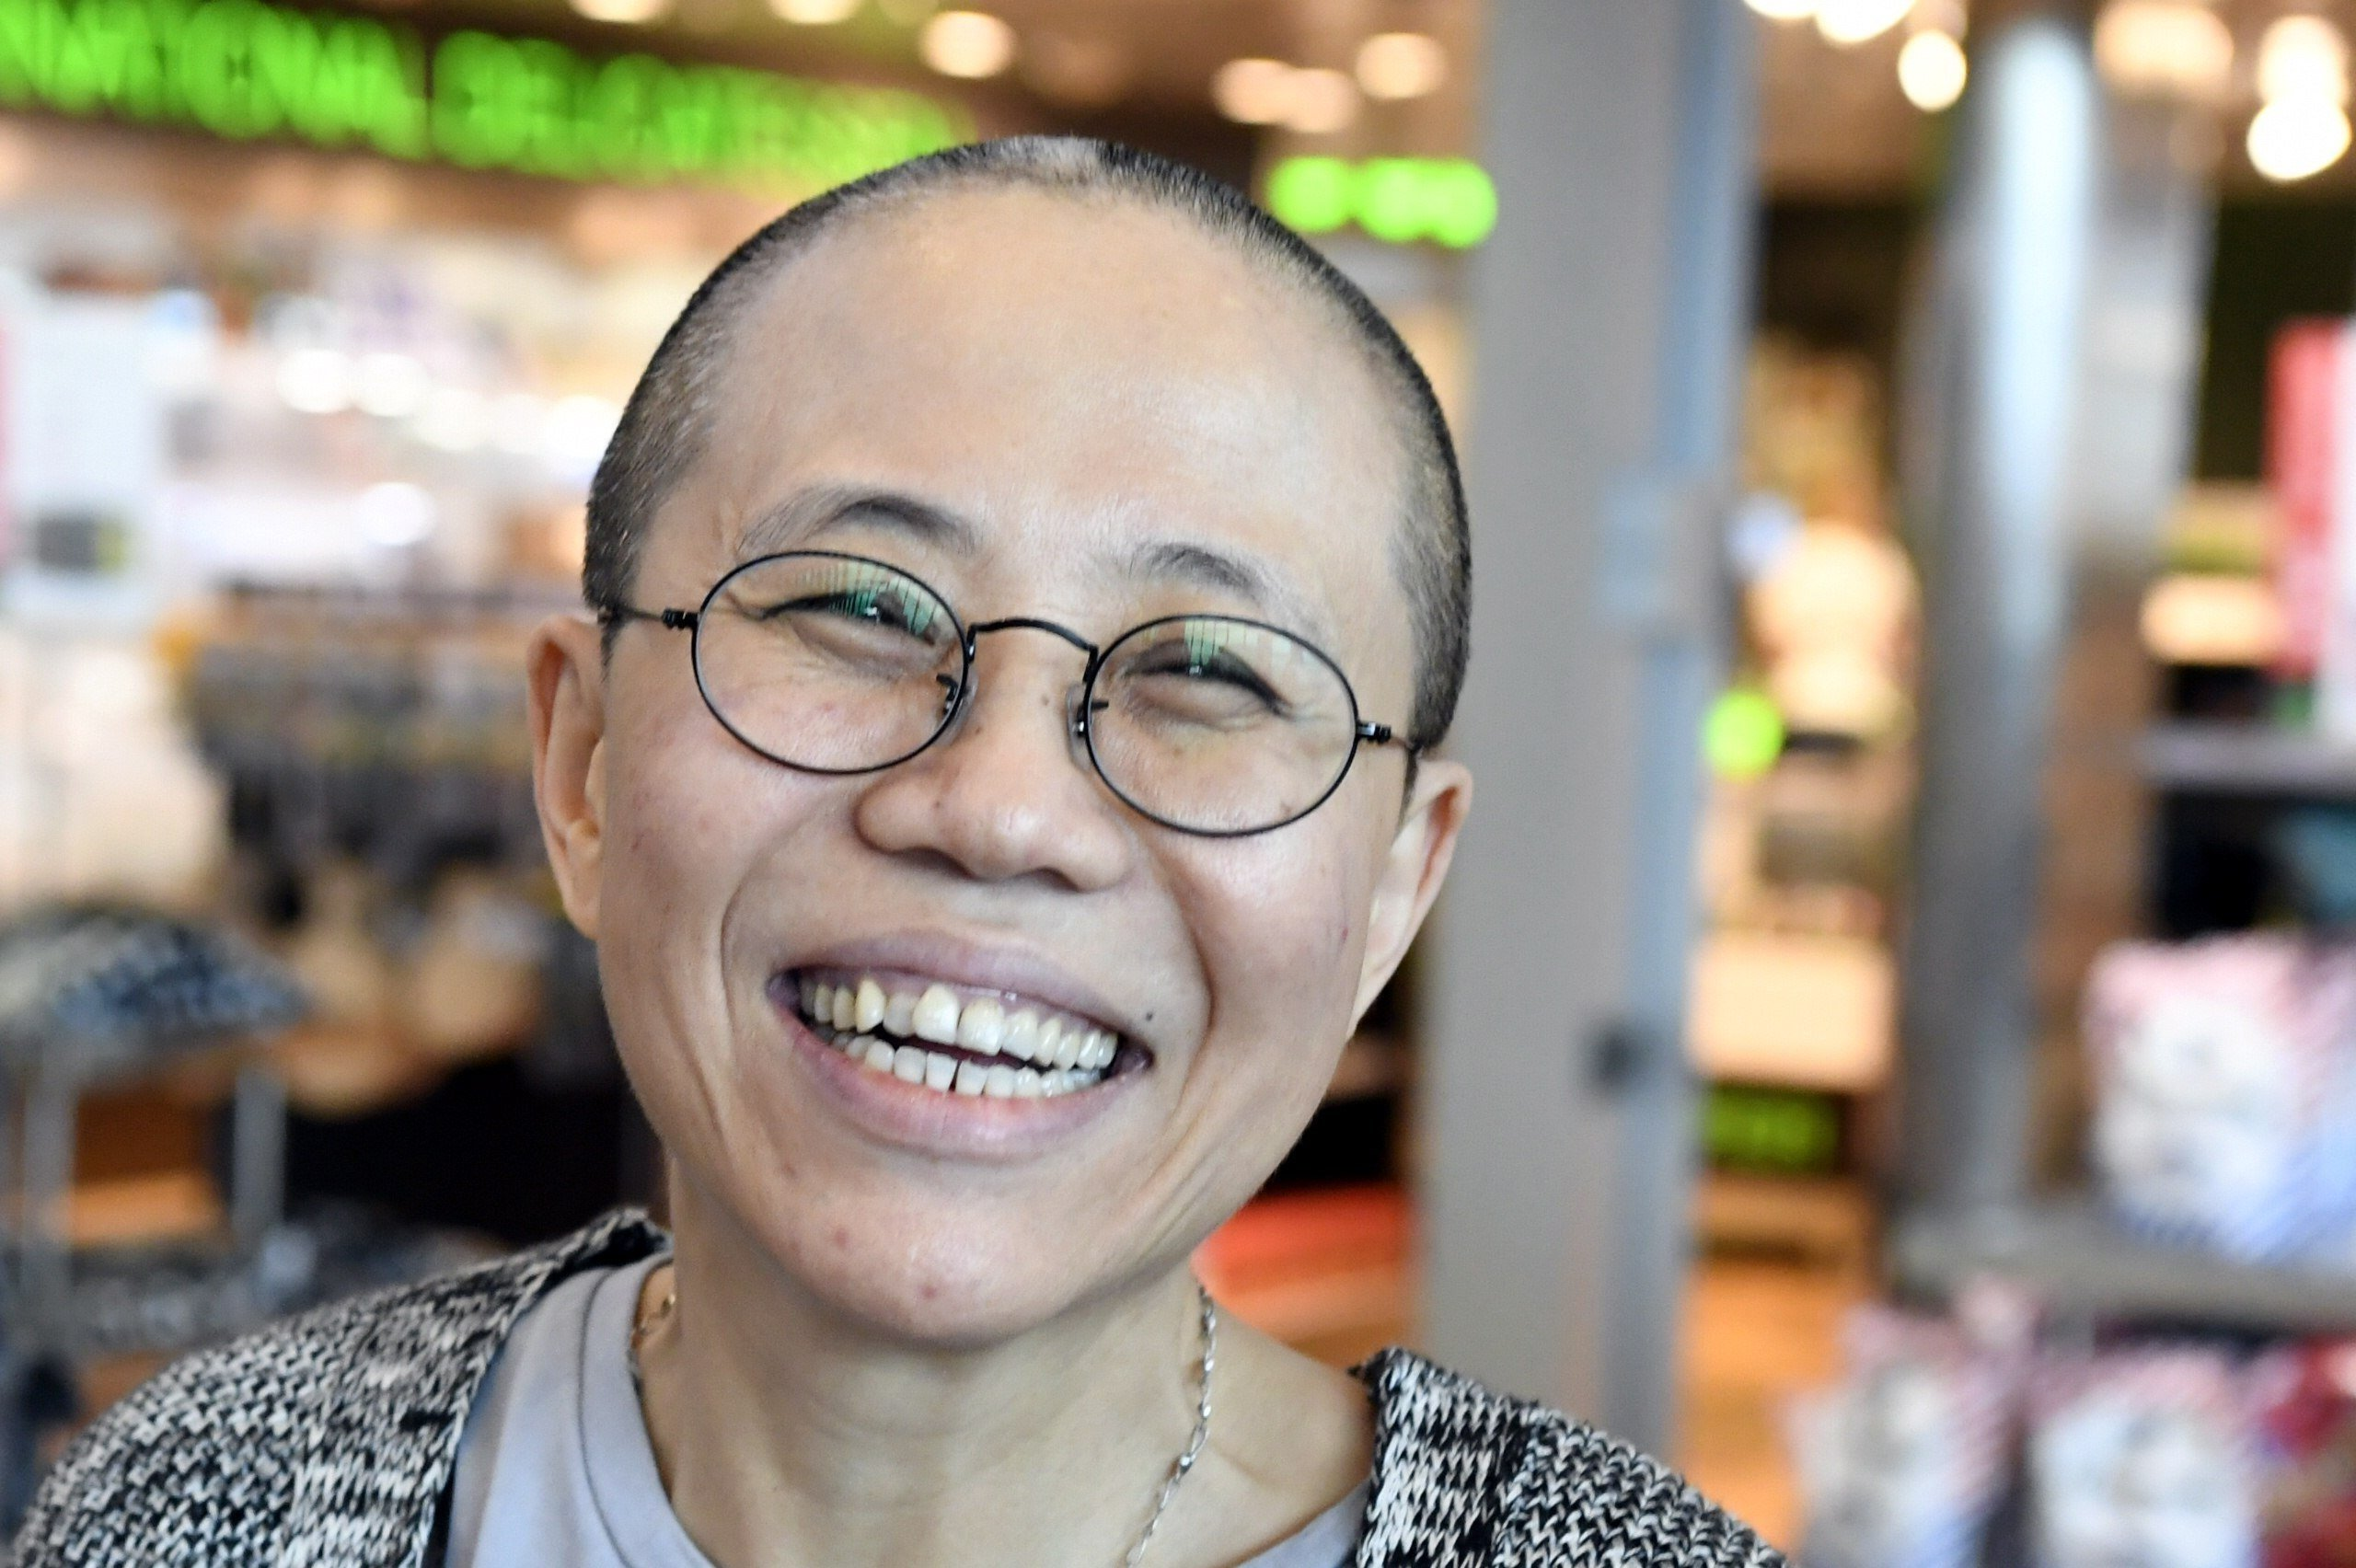 Liu Xia on her arrival in Finland. Despite facing no charges, the 57-year-old poet had endured heavy restrictions on her movements since 2010 when her husband won the Nobel Peace Prize.